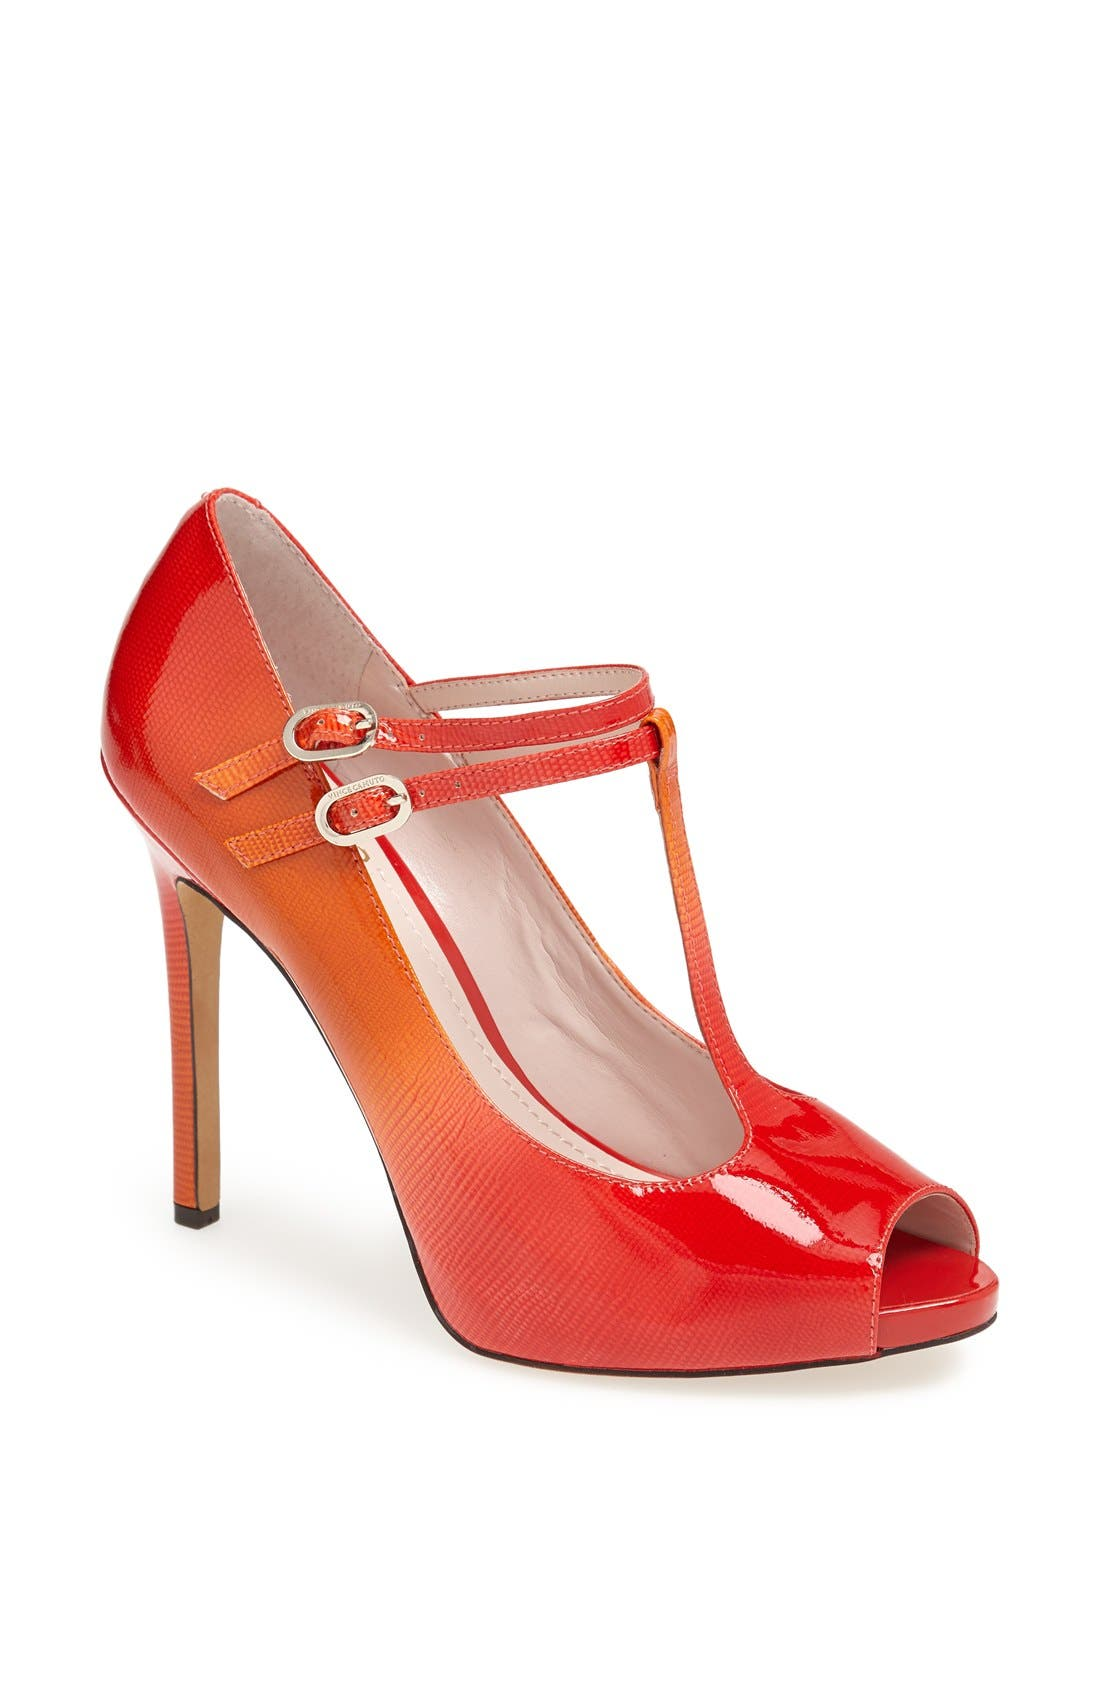 Alternate Image 1 Selected - Vince Camuto 'Carlii' Patent Leather Peep Toe Pump